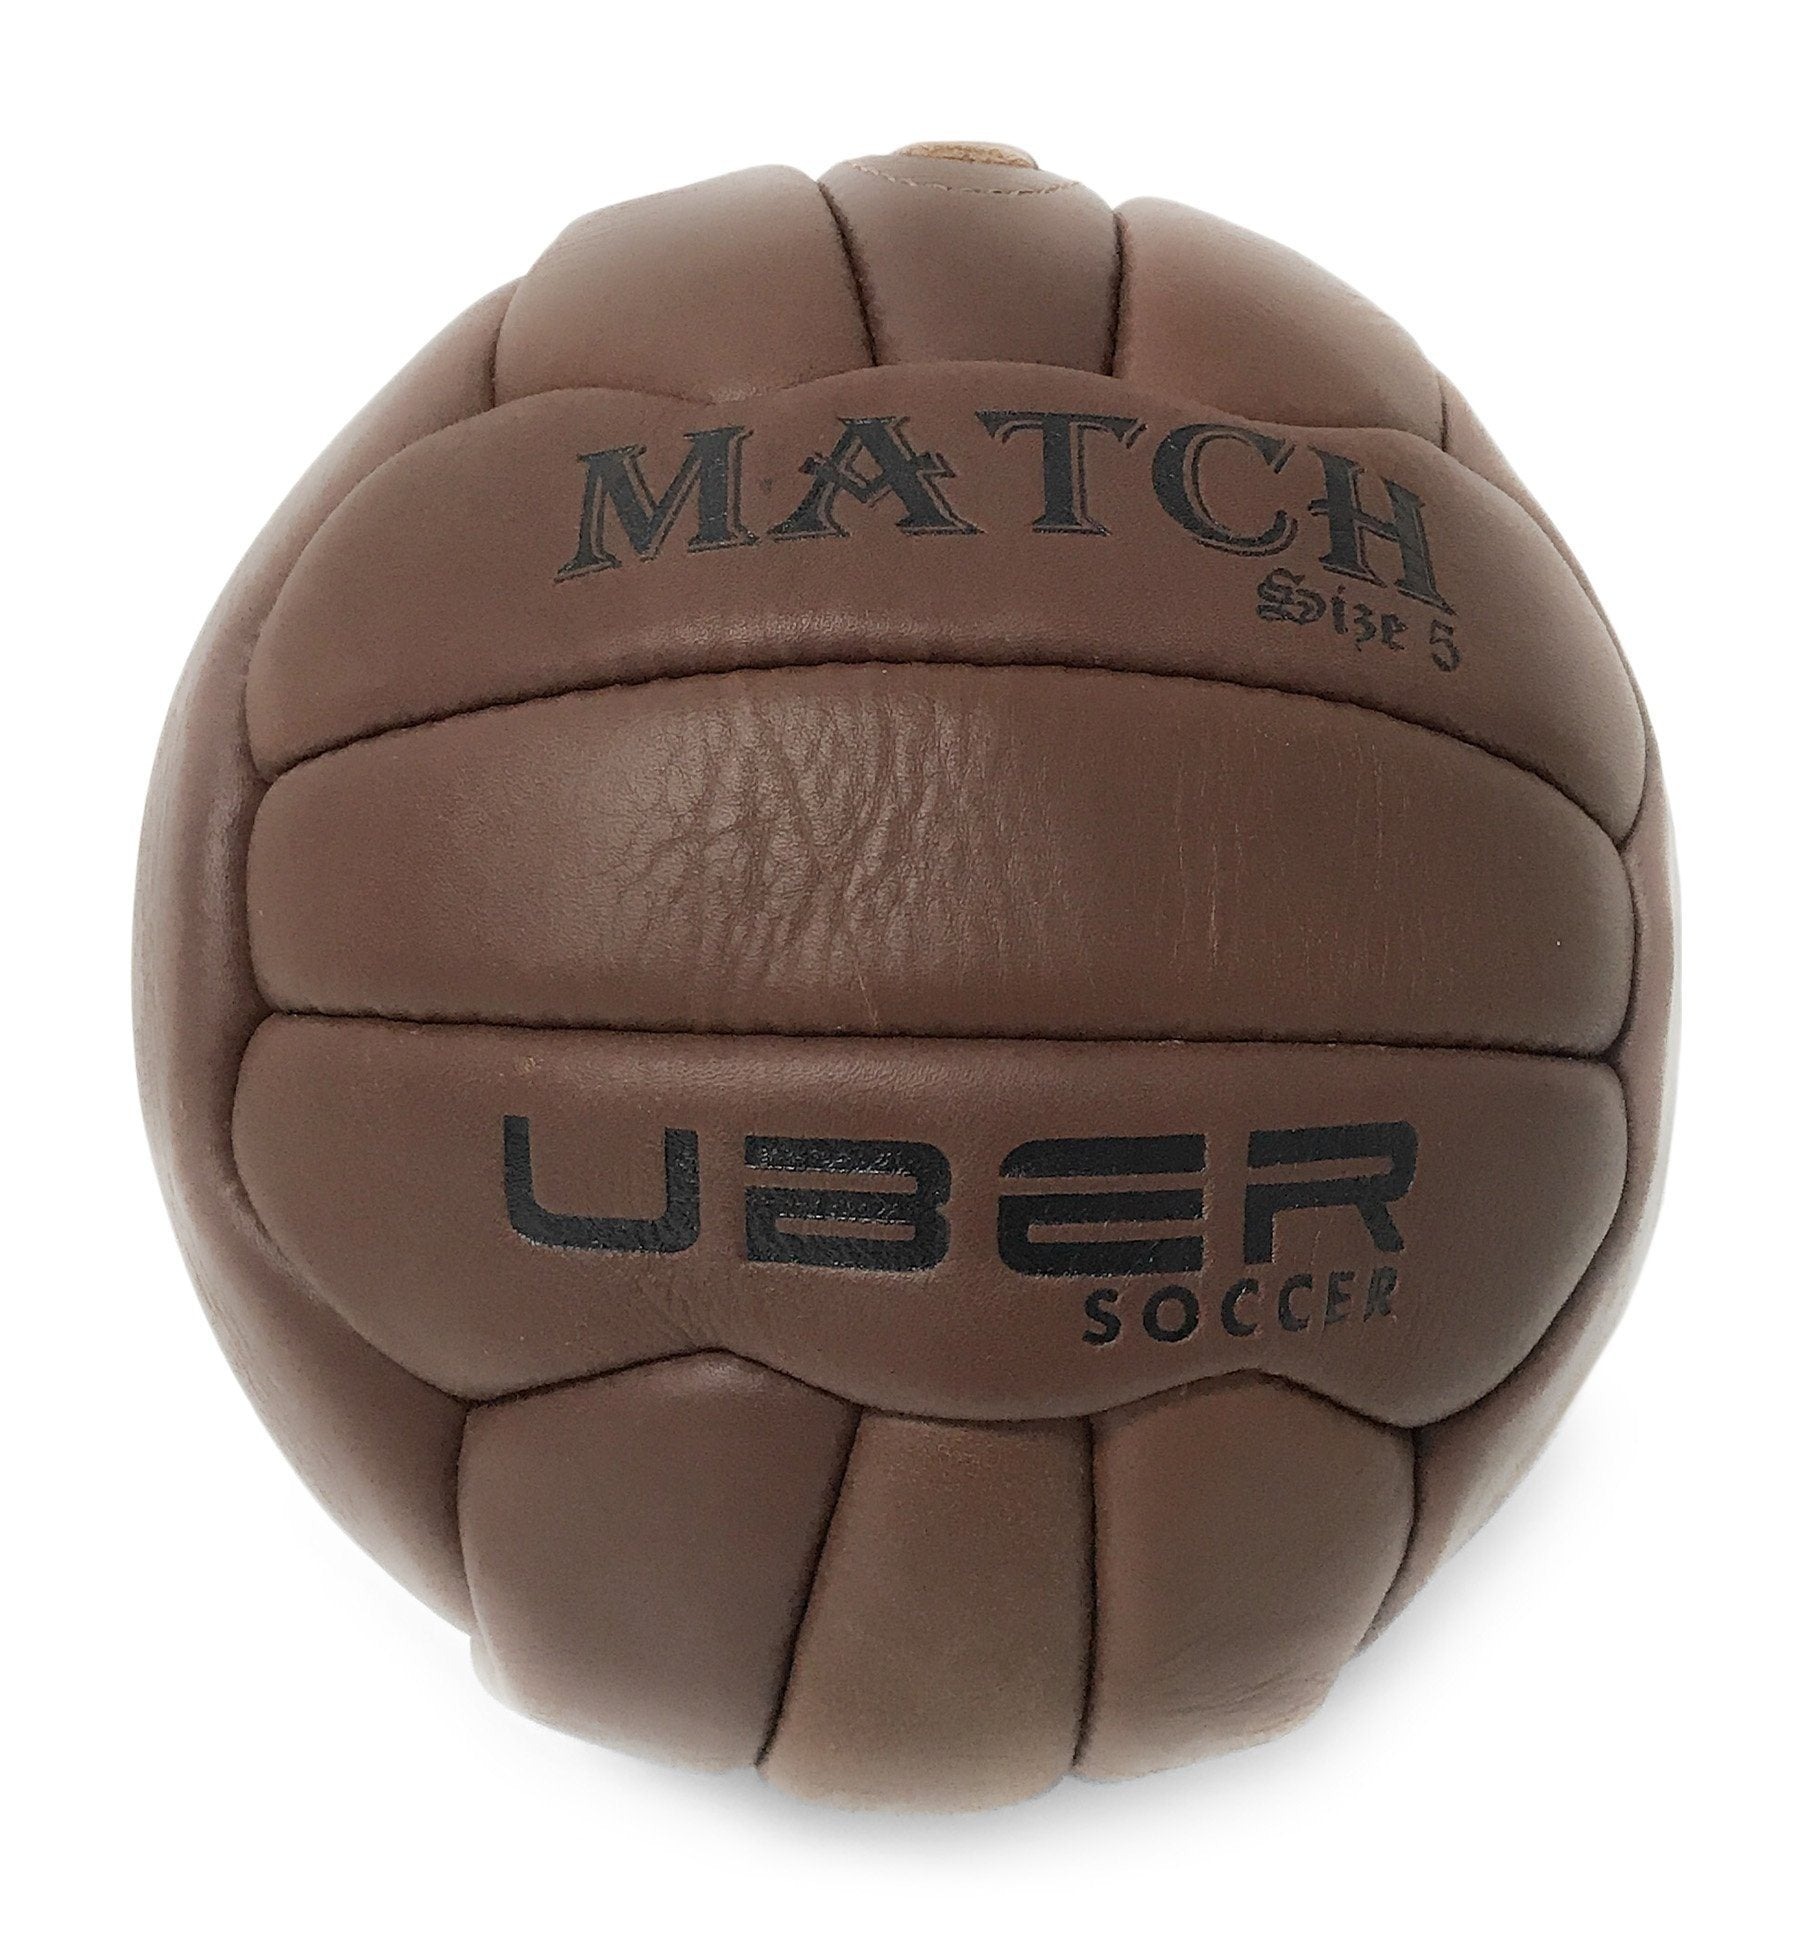 check out 691db bd923 Uber Soccer Vintage Match Soccer Ball - Players Replica ...